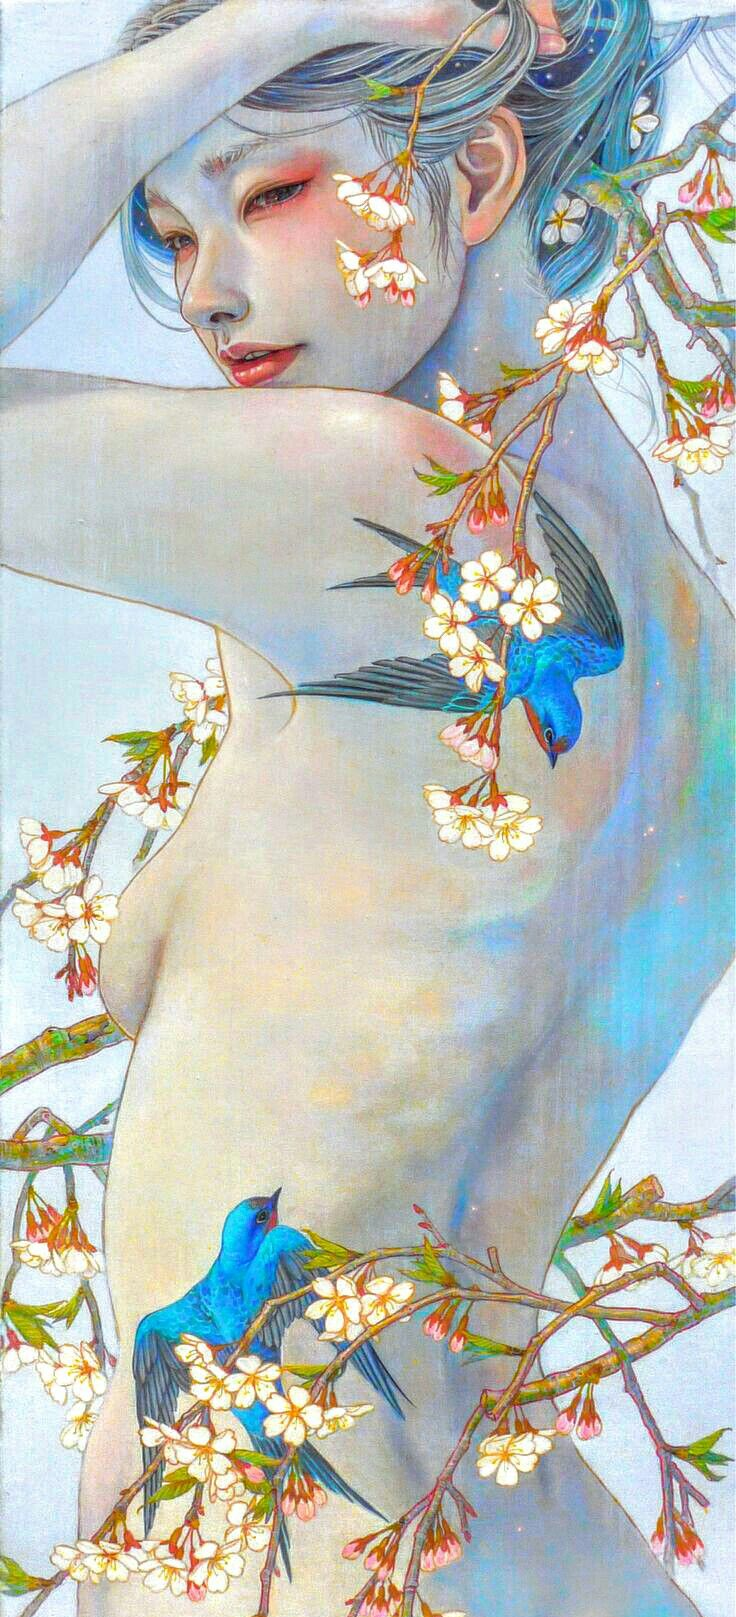 The Beauties of Nature by Miho Hirano